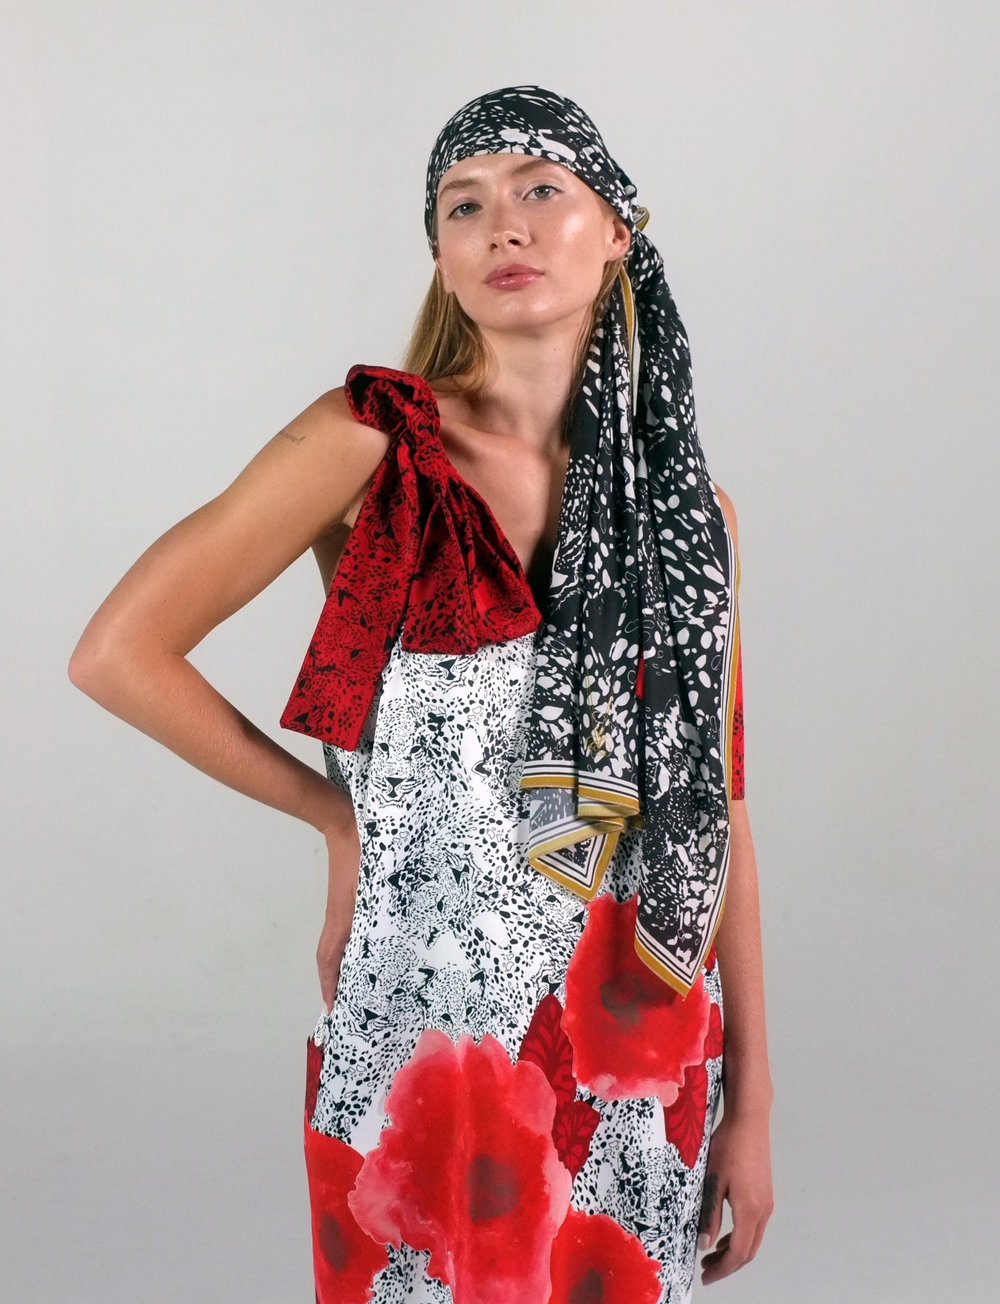 A woman poses with a black and white scarf tied around her head while wearing a red and white floral dress